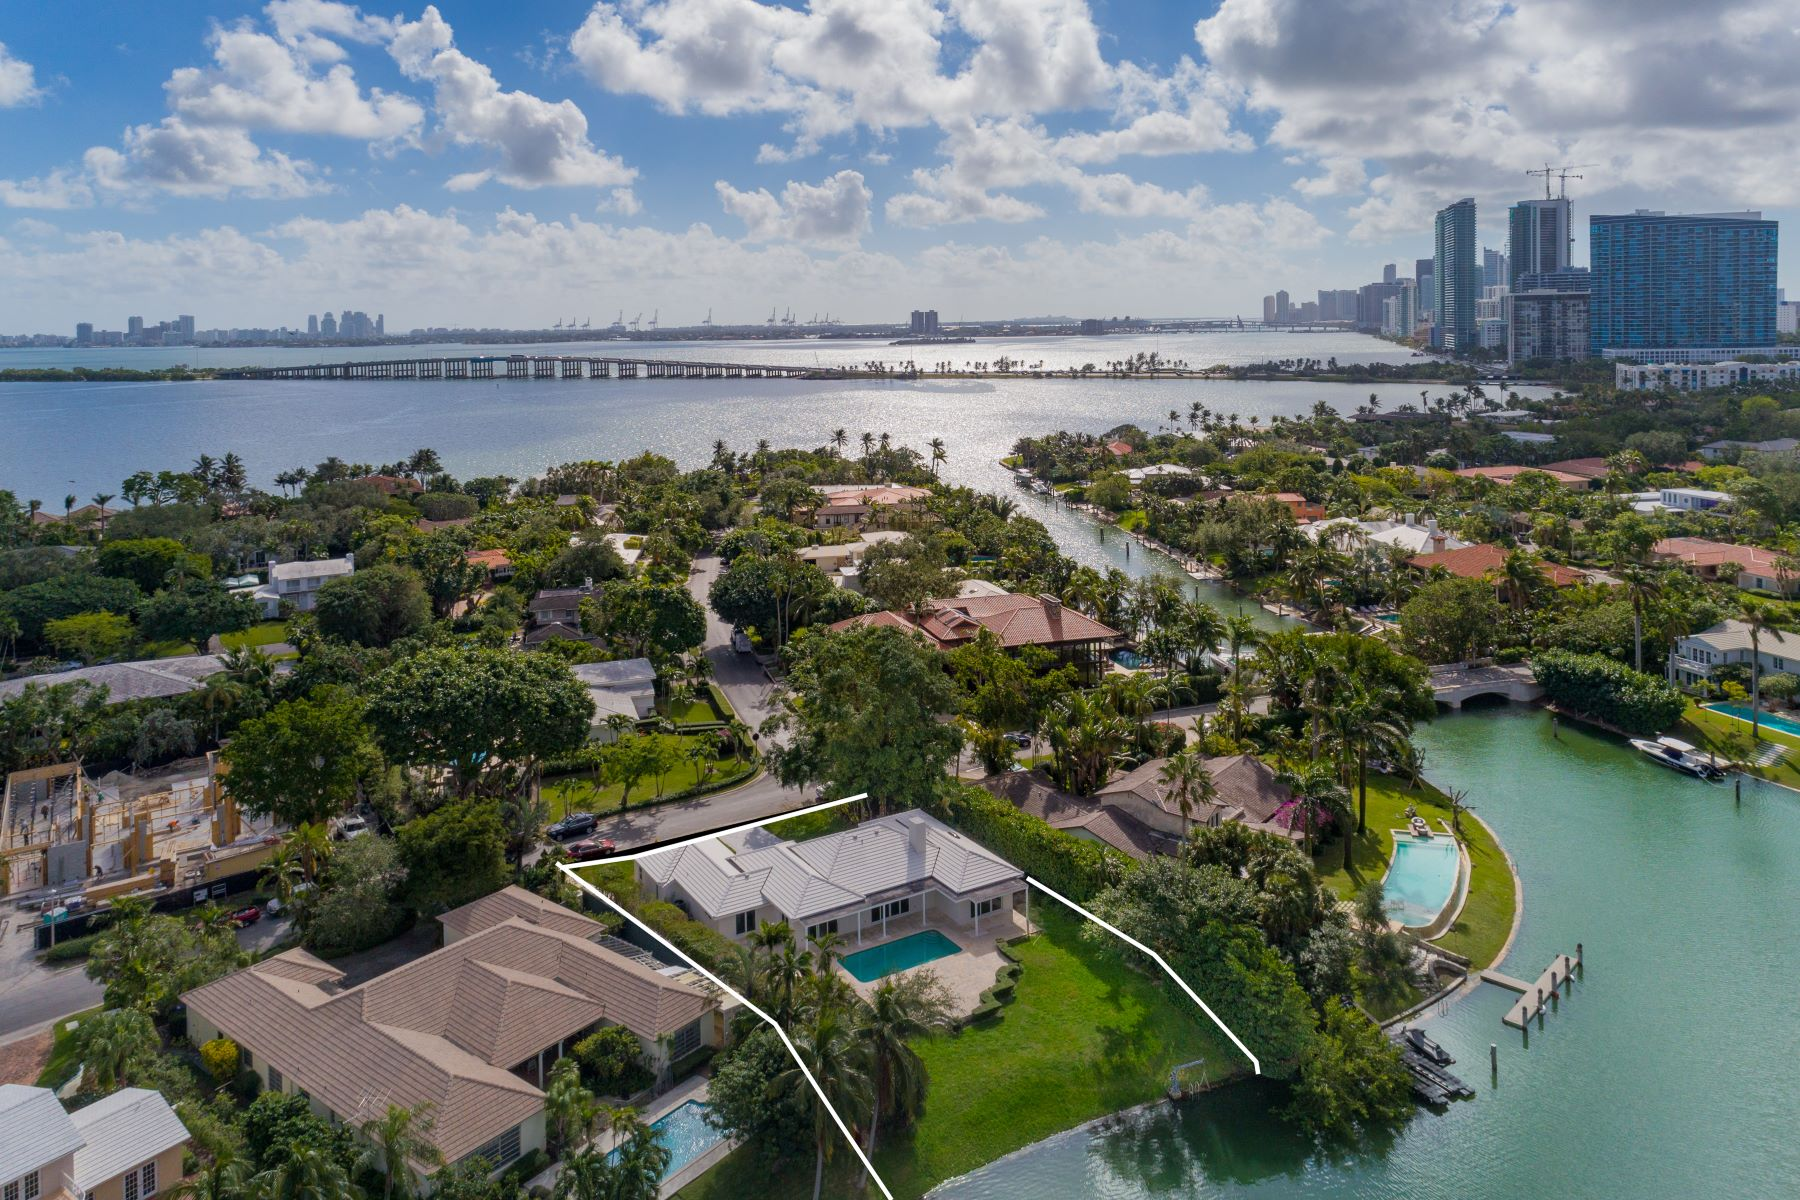 House for Sale at 4425 Island Rd 4425 Island Rd Miami, Florida 33137 United States